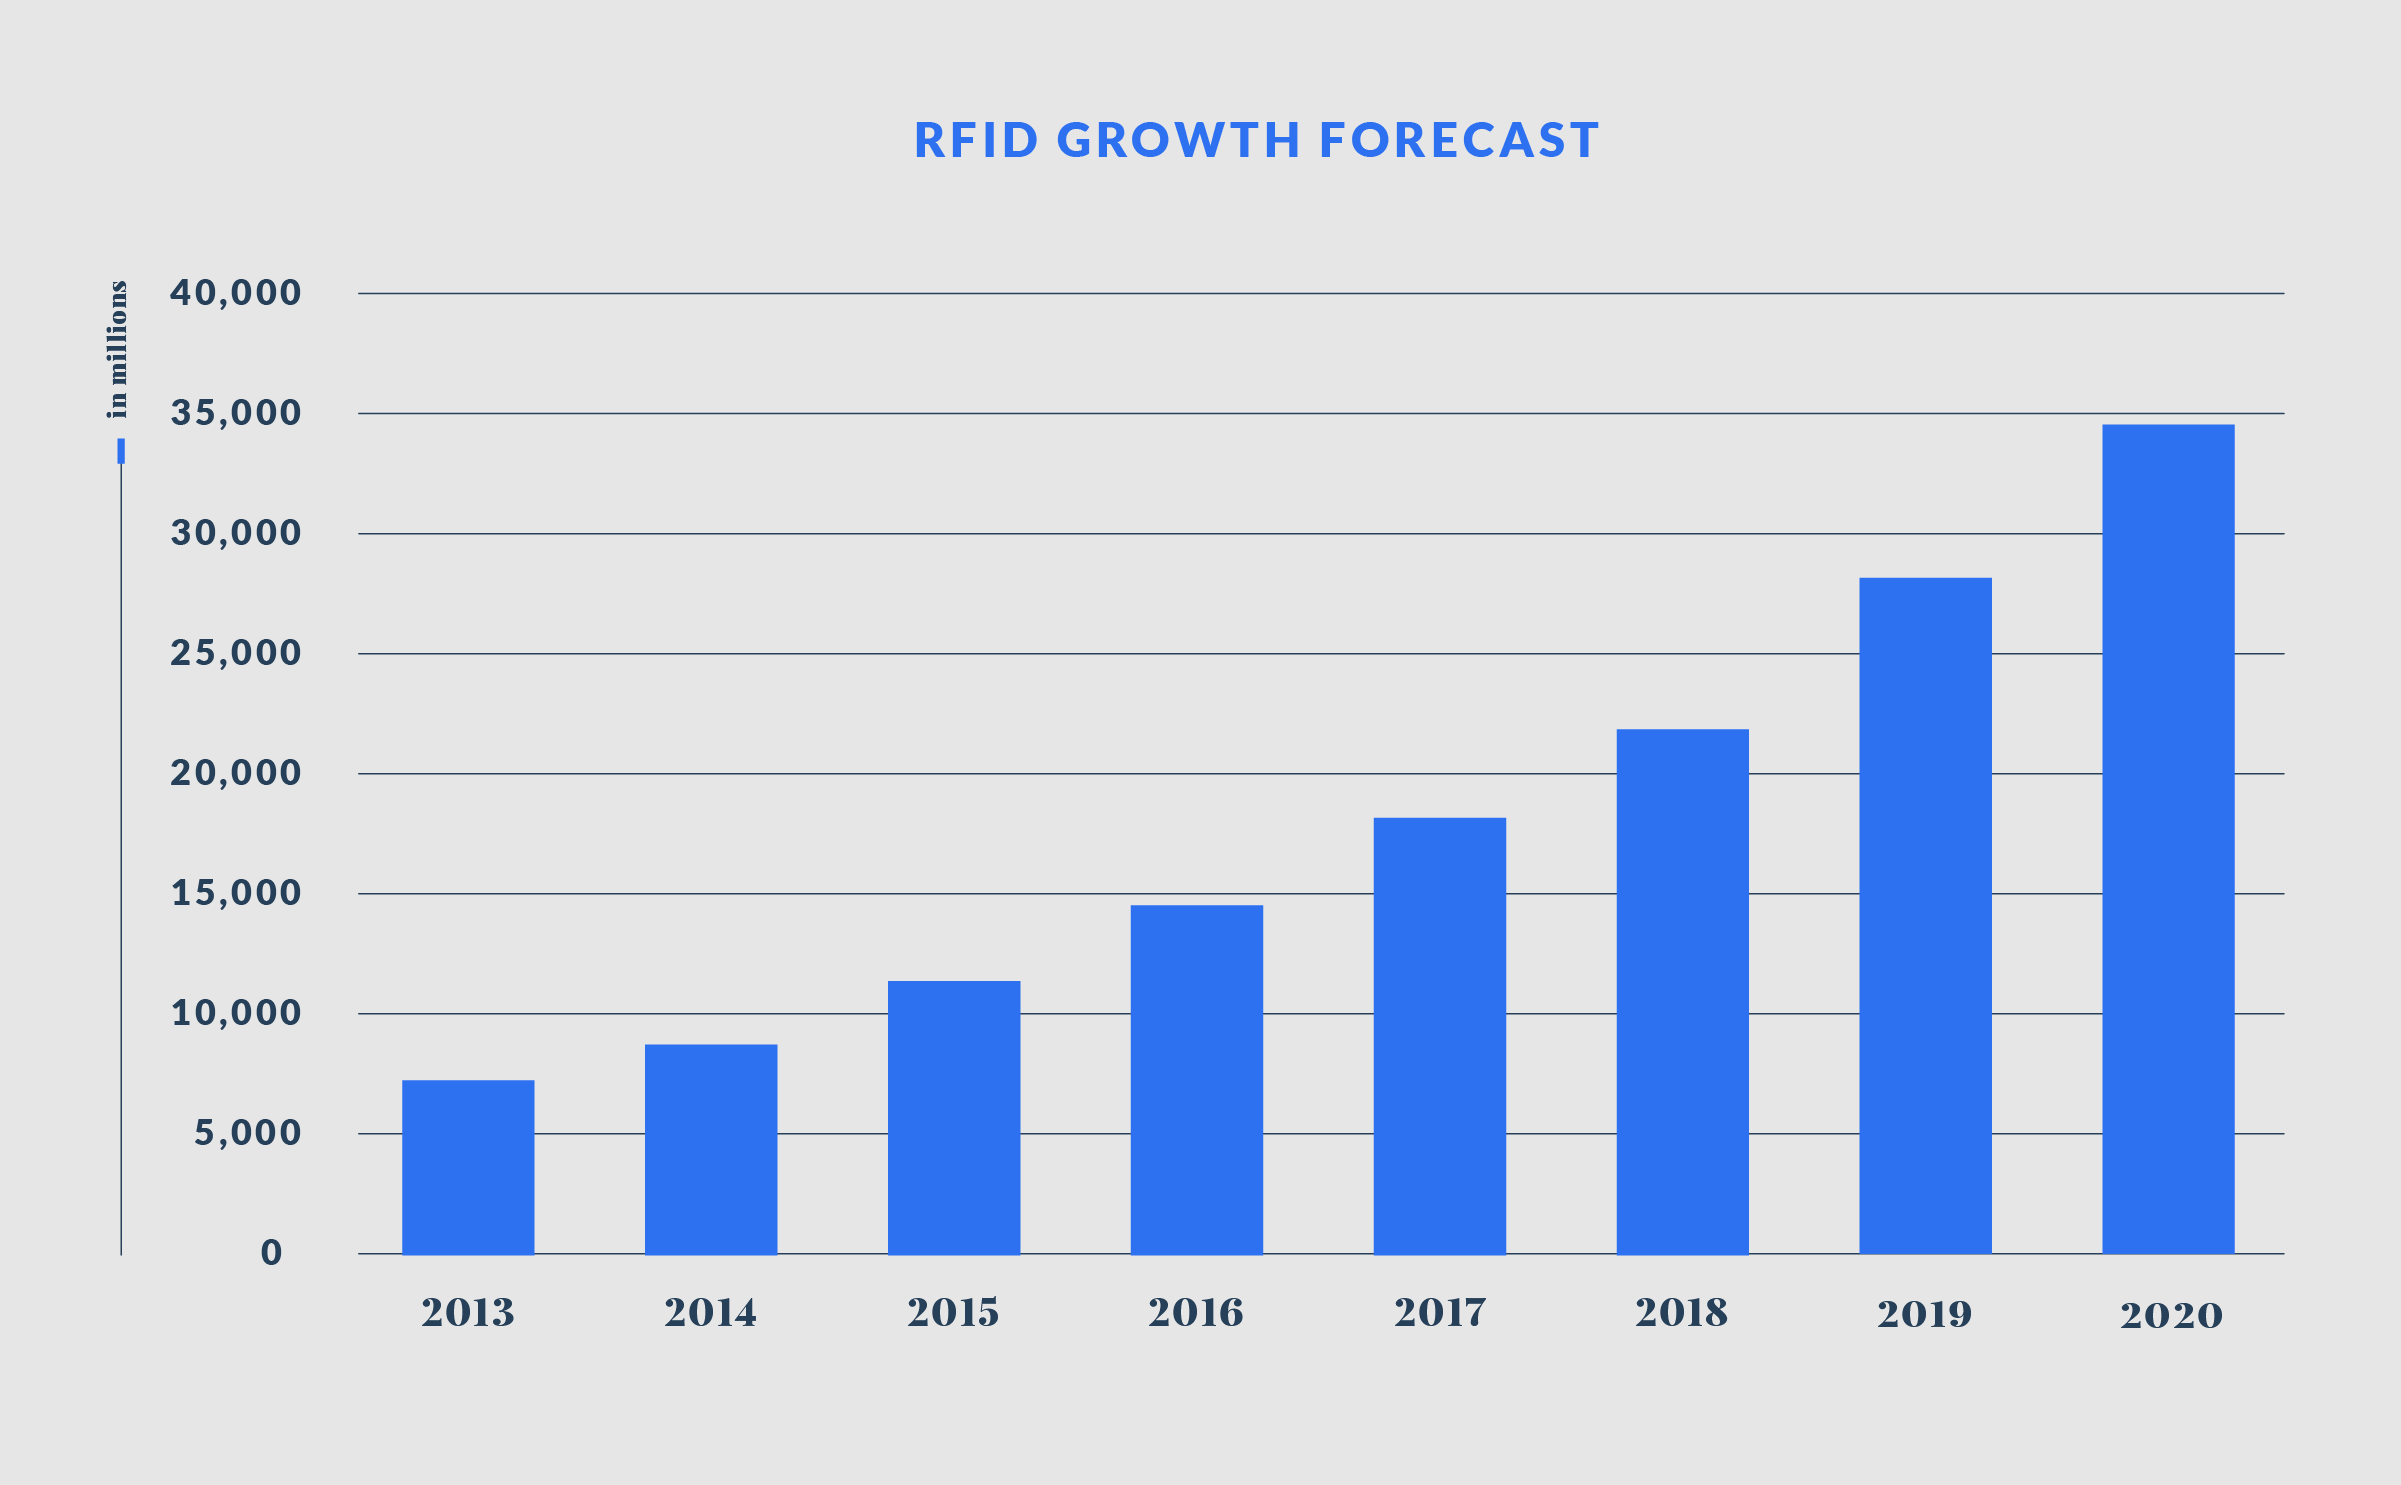 RFID and NFC Growth Forecast Chart